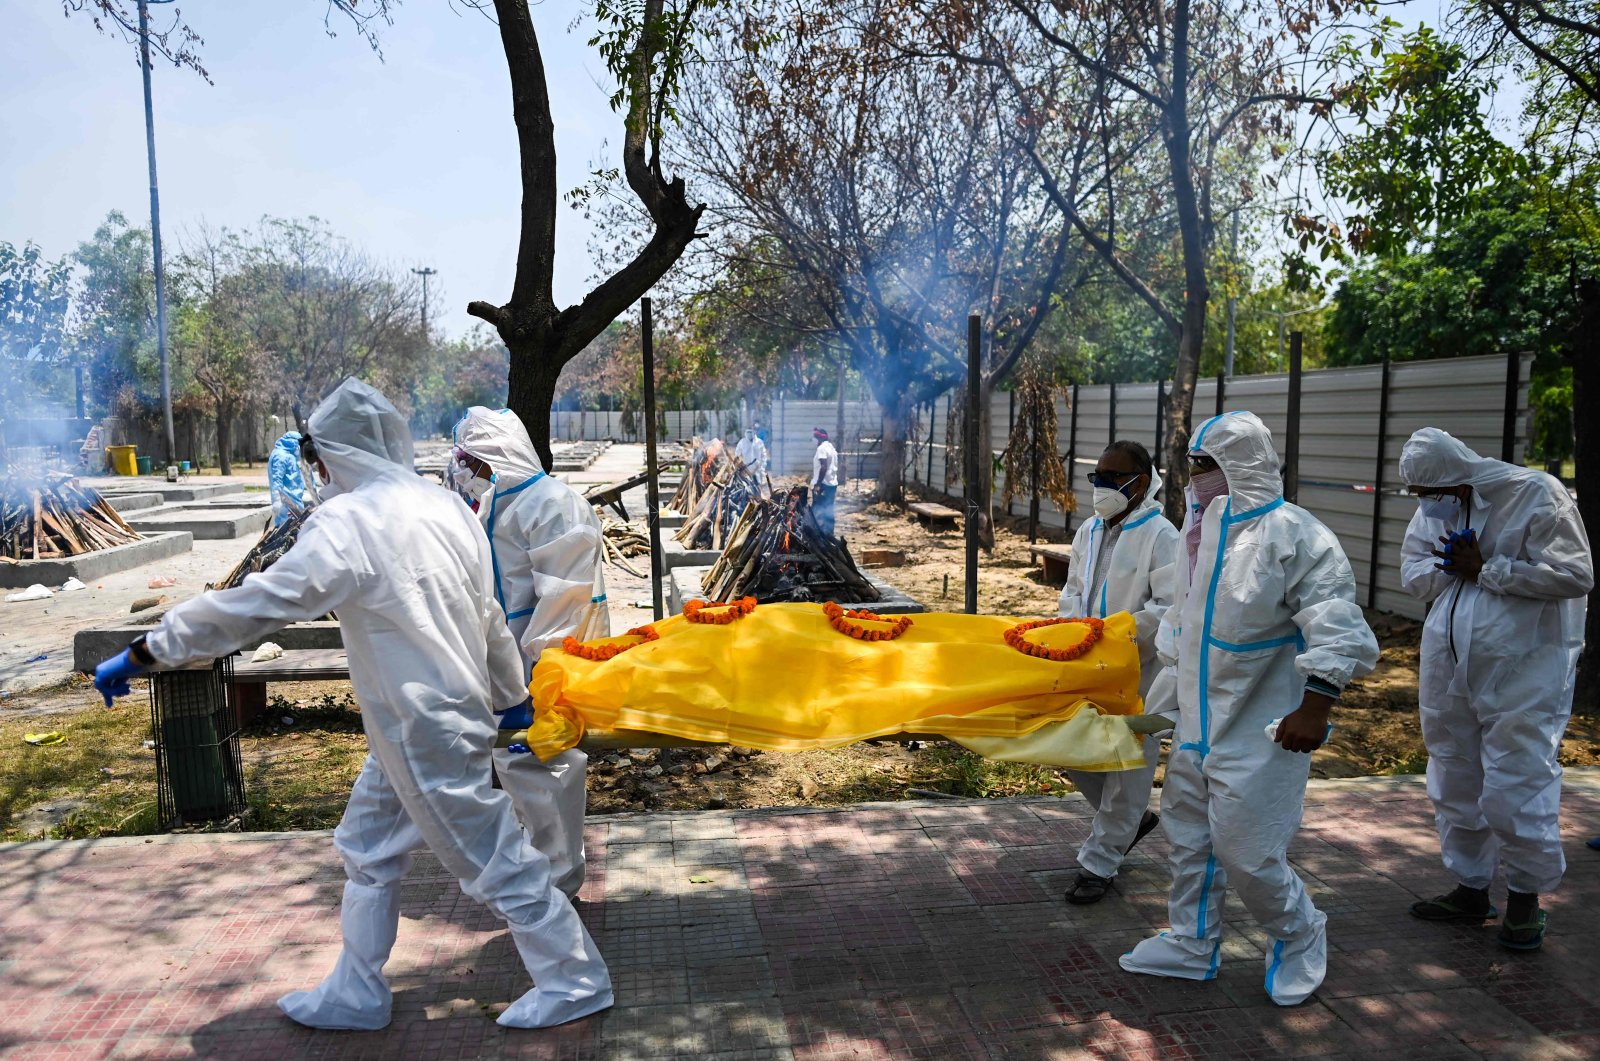 Relatives bring the body of a COVID-19 victim to cremate at a cremation ground in New Delhi, India, May 11, 2021. (AFP Photo)